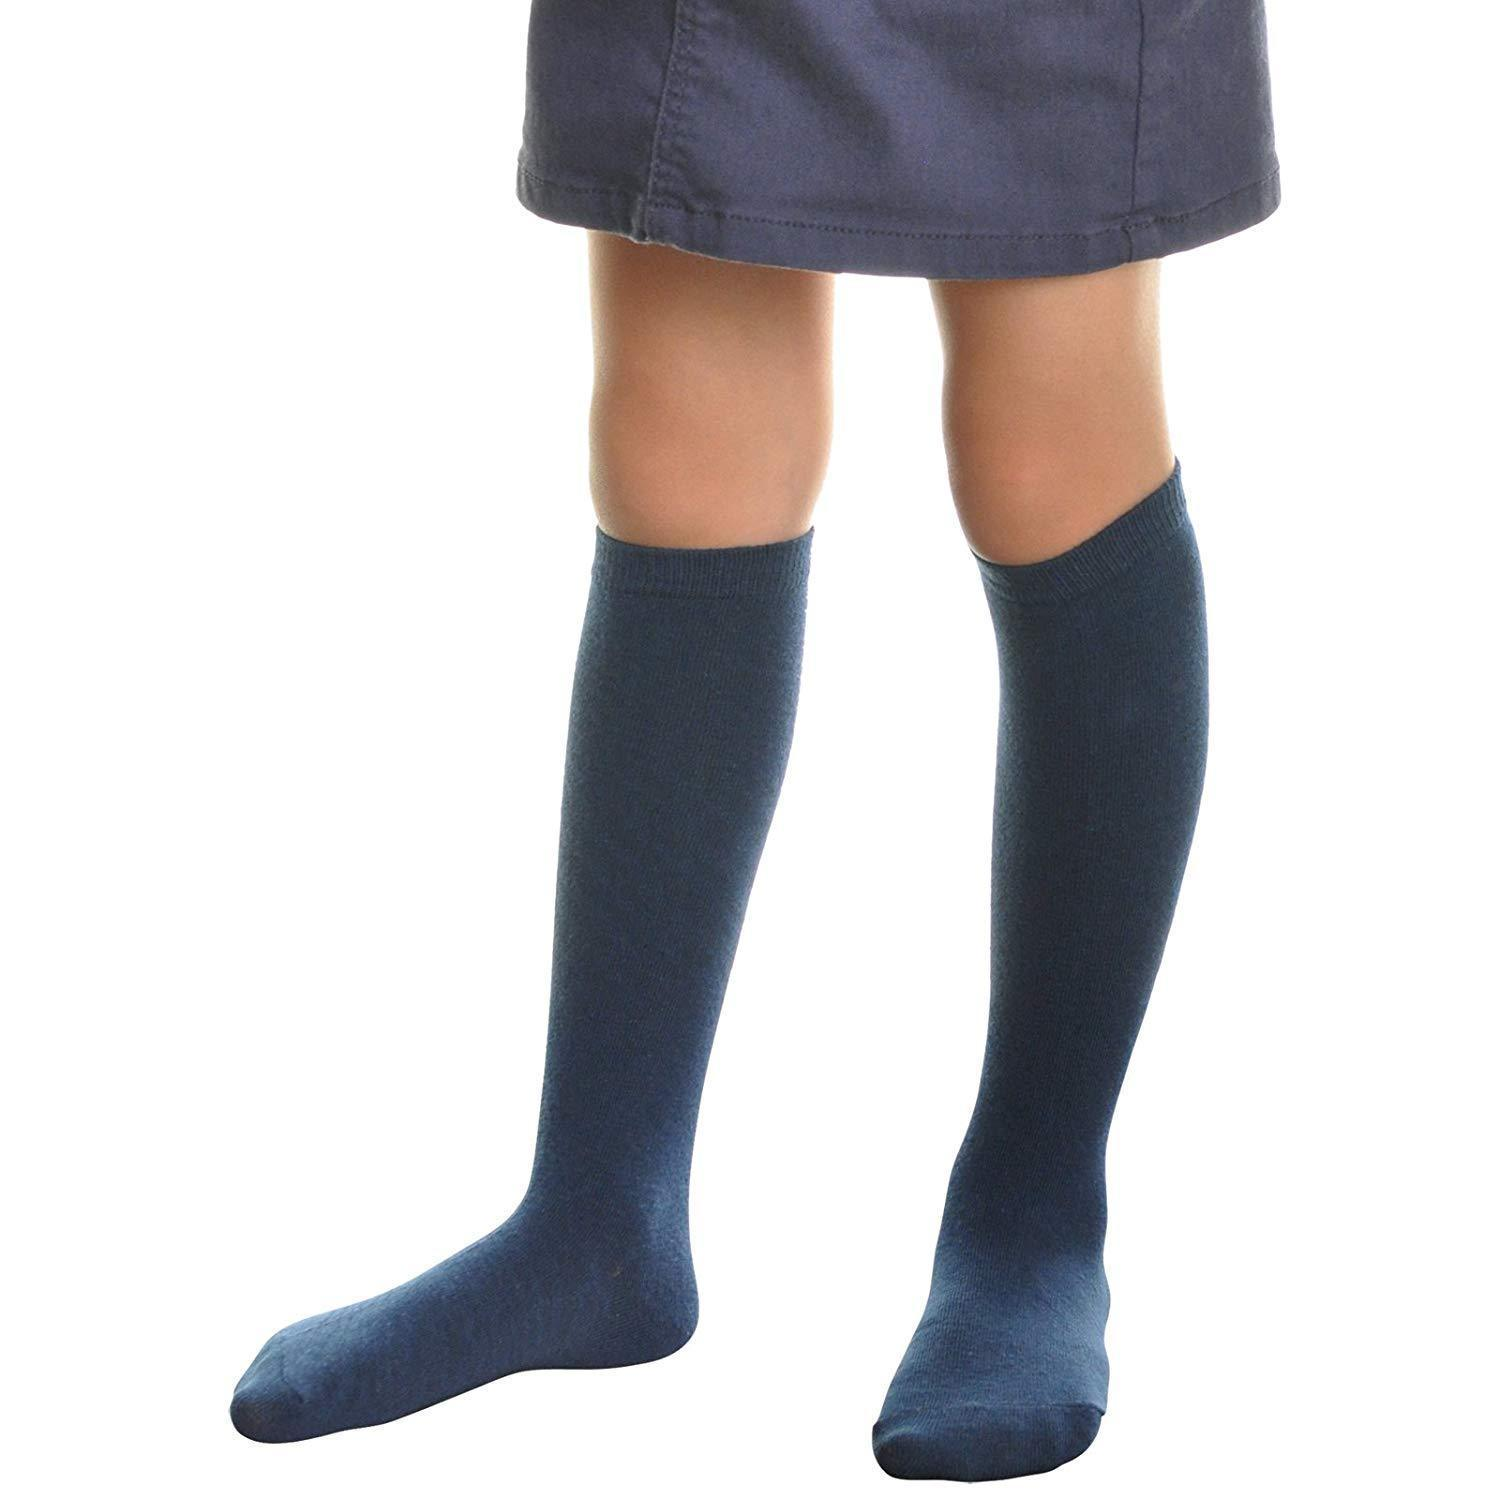 Angelina 11 Pair Pack Girl's Knee High Cotton Blend Socks Navy Size XL 3102